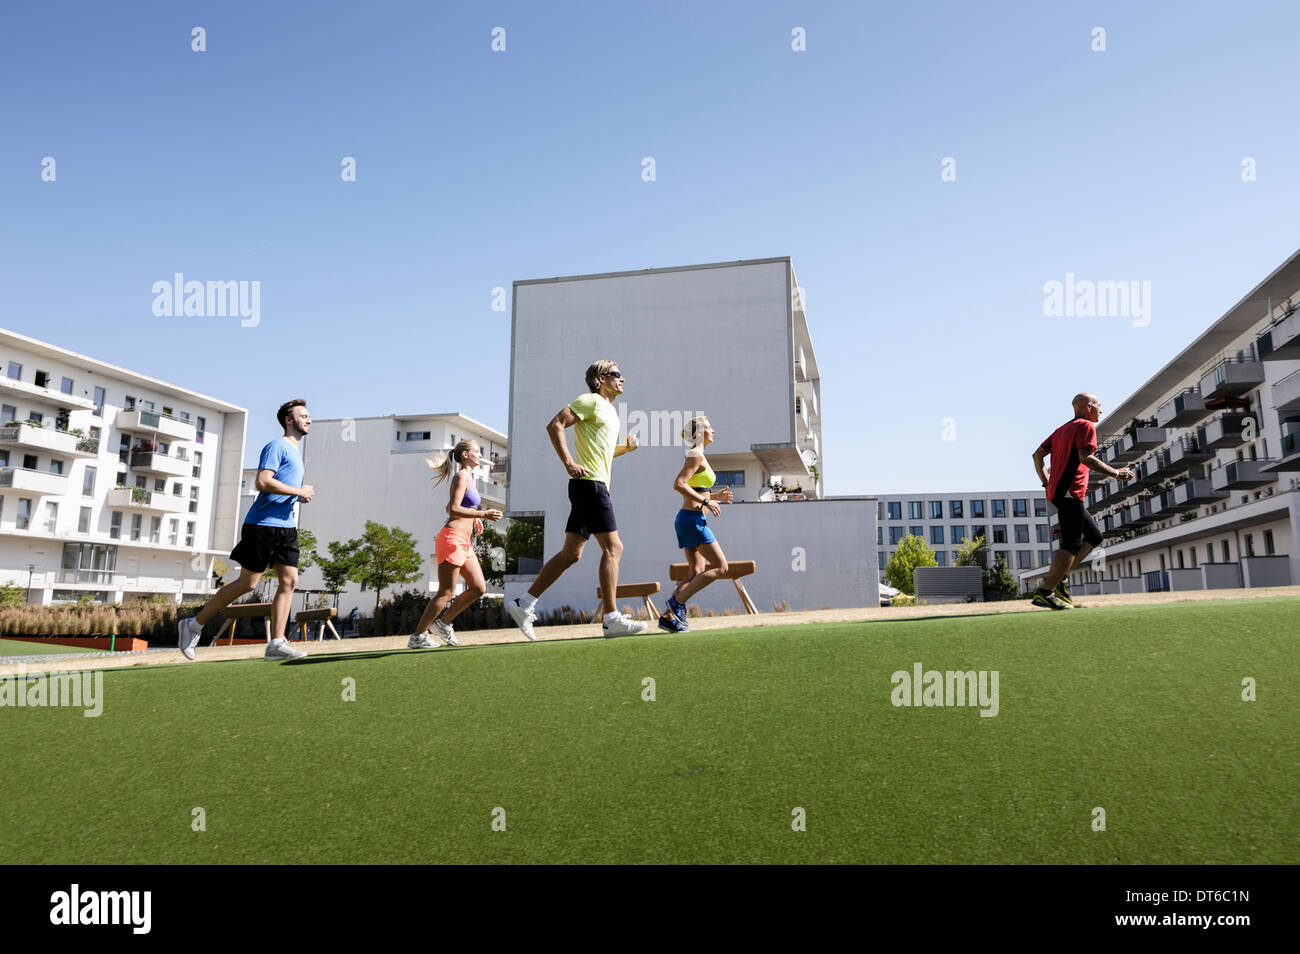 Mature trainer running with small group of adults in park - Stock Image